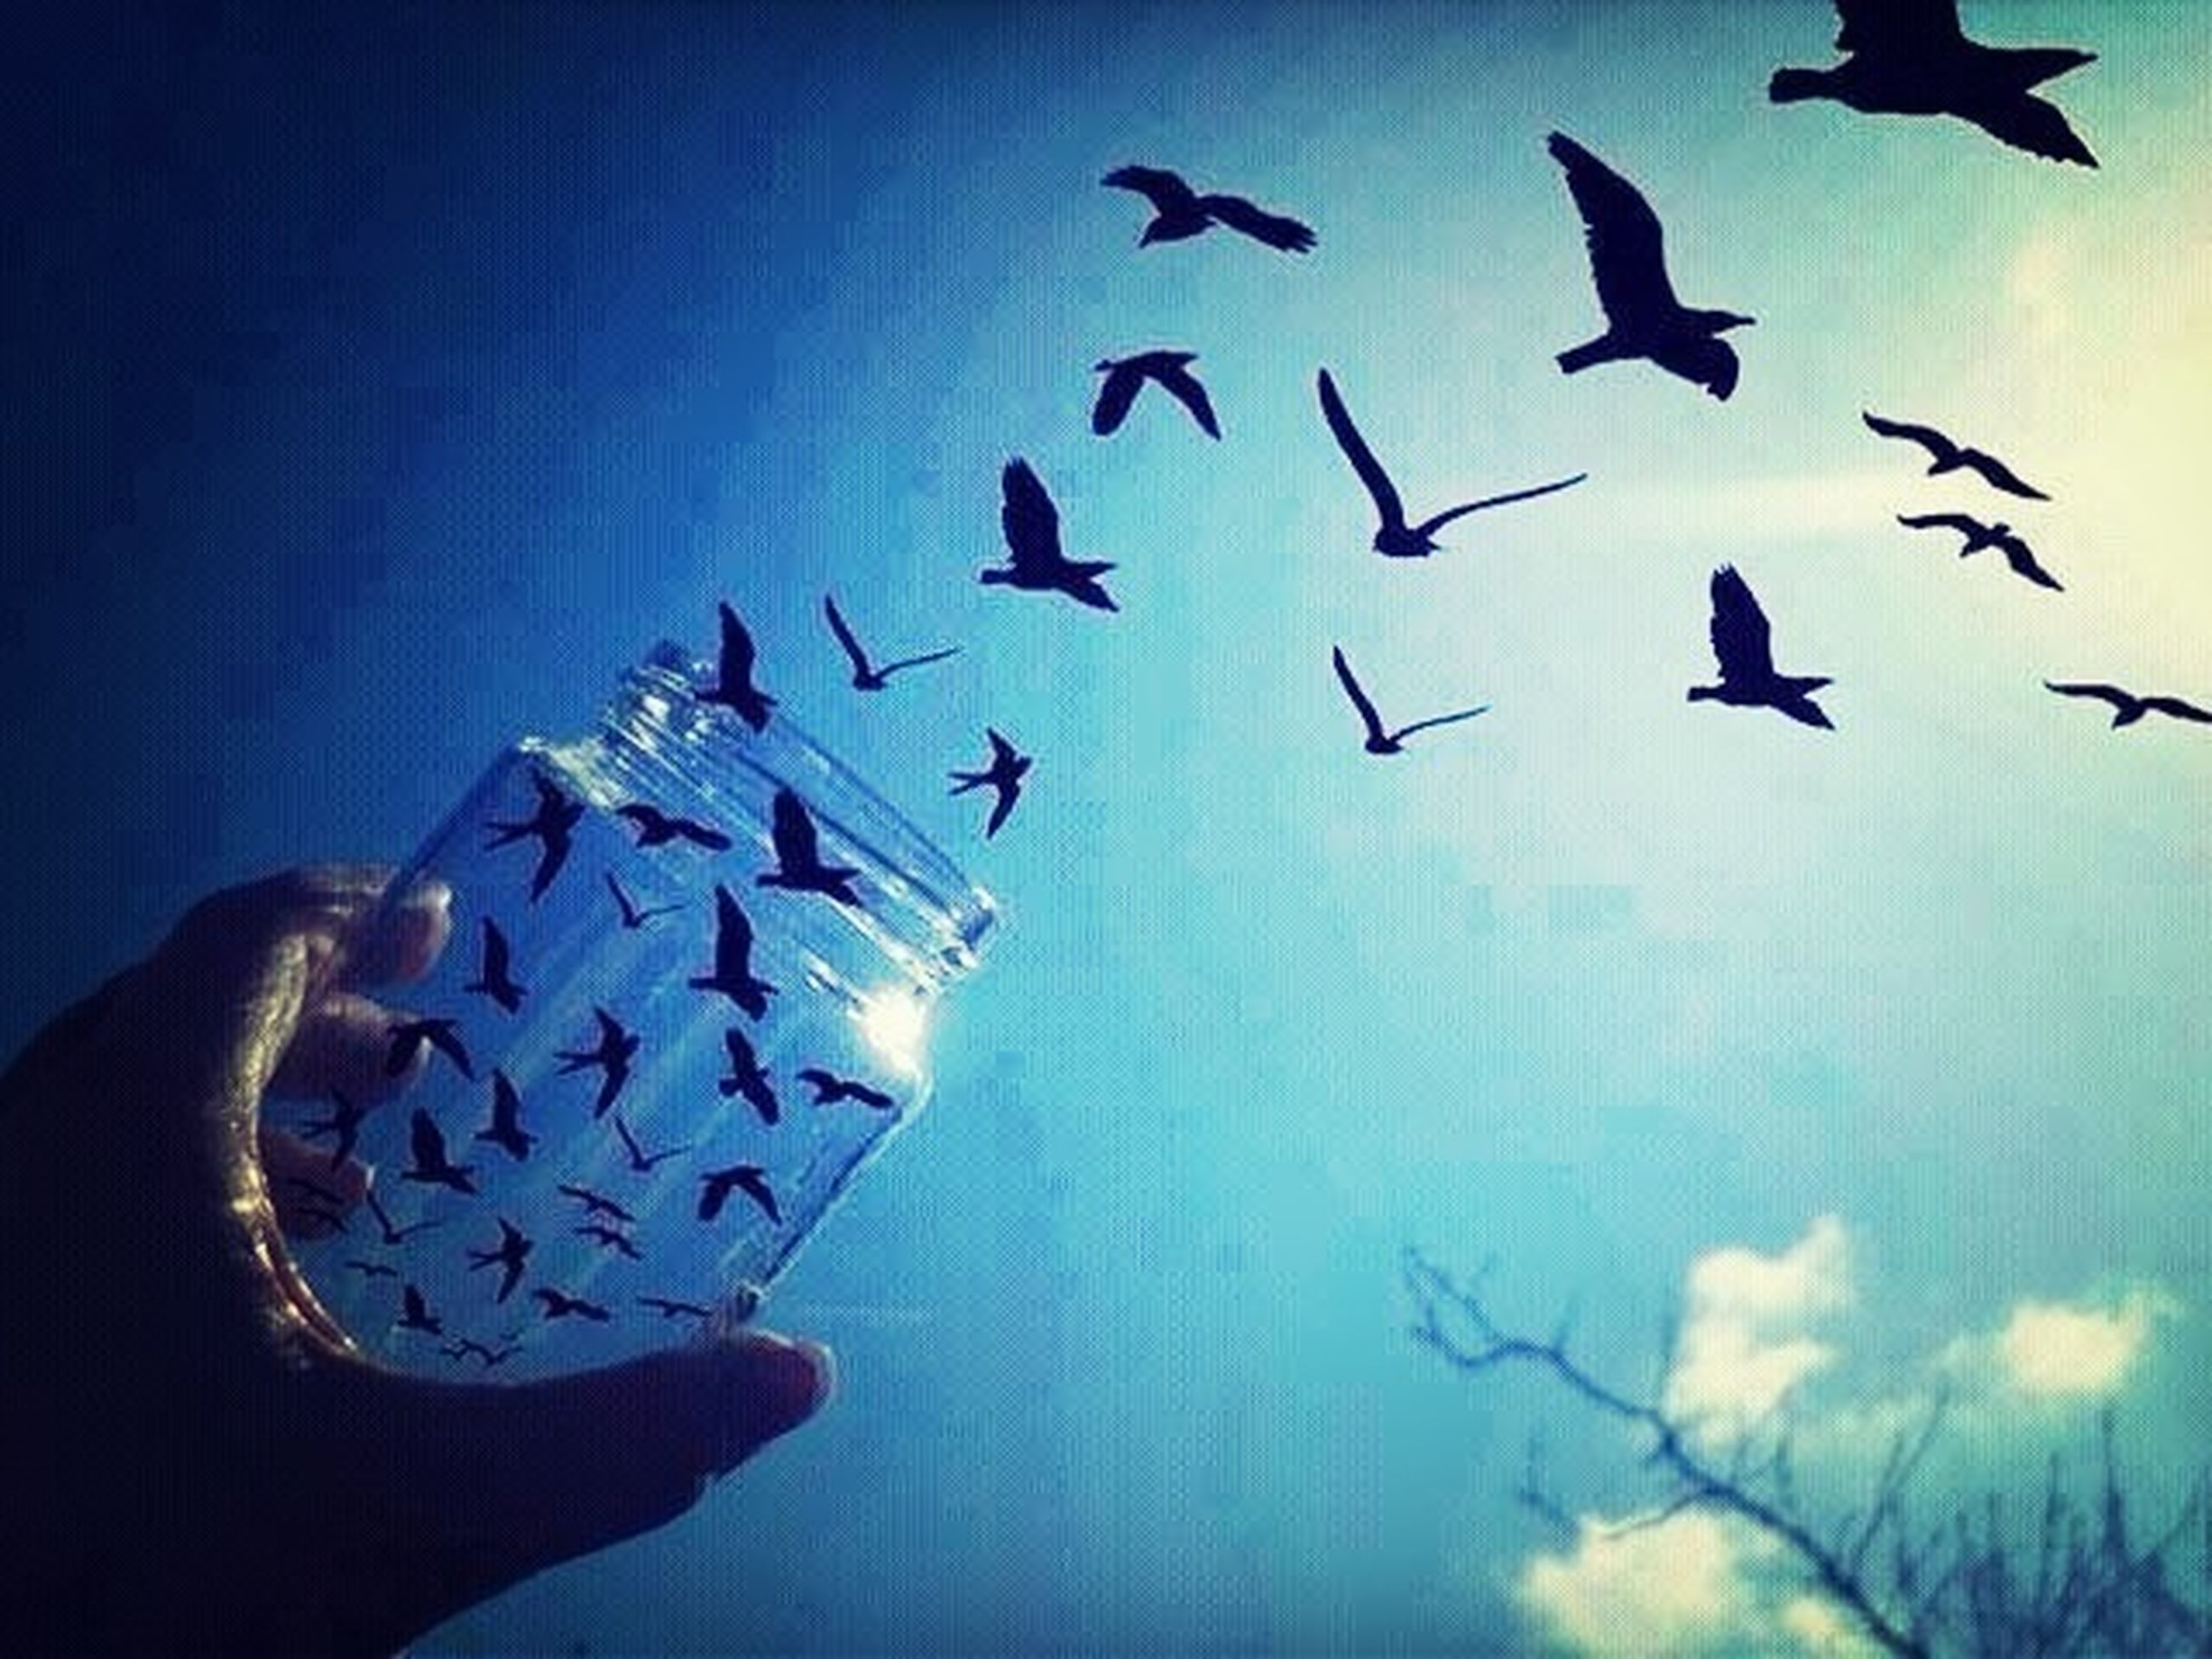 flying, bird, animals in the wild, animal themes, flock of birds, low angle view, wildlife, blue, sky, mid-air, spread wings, silhouette, clear sky, outdoors, built structure, day, togetherness, medium group of animals